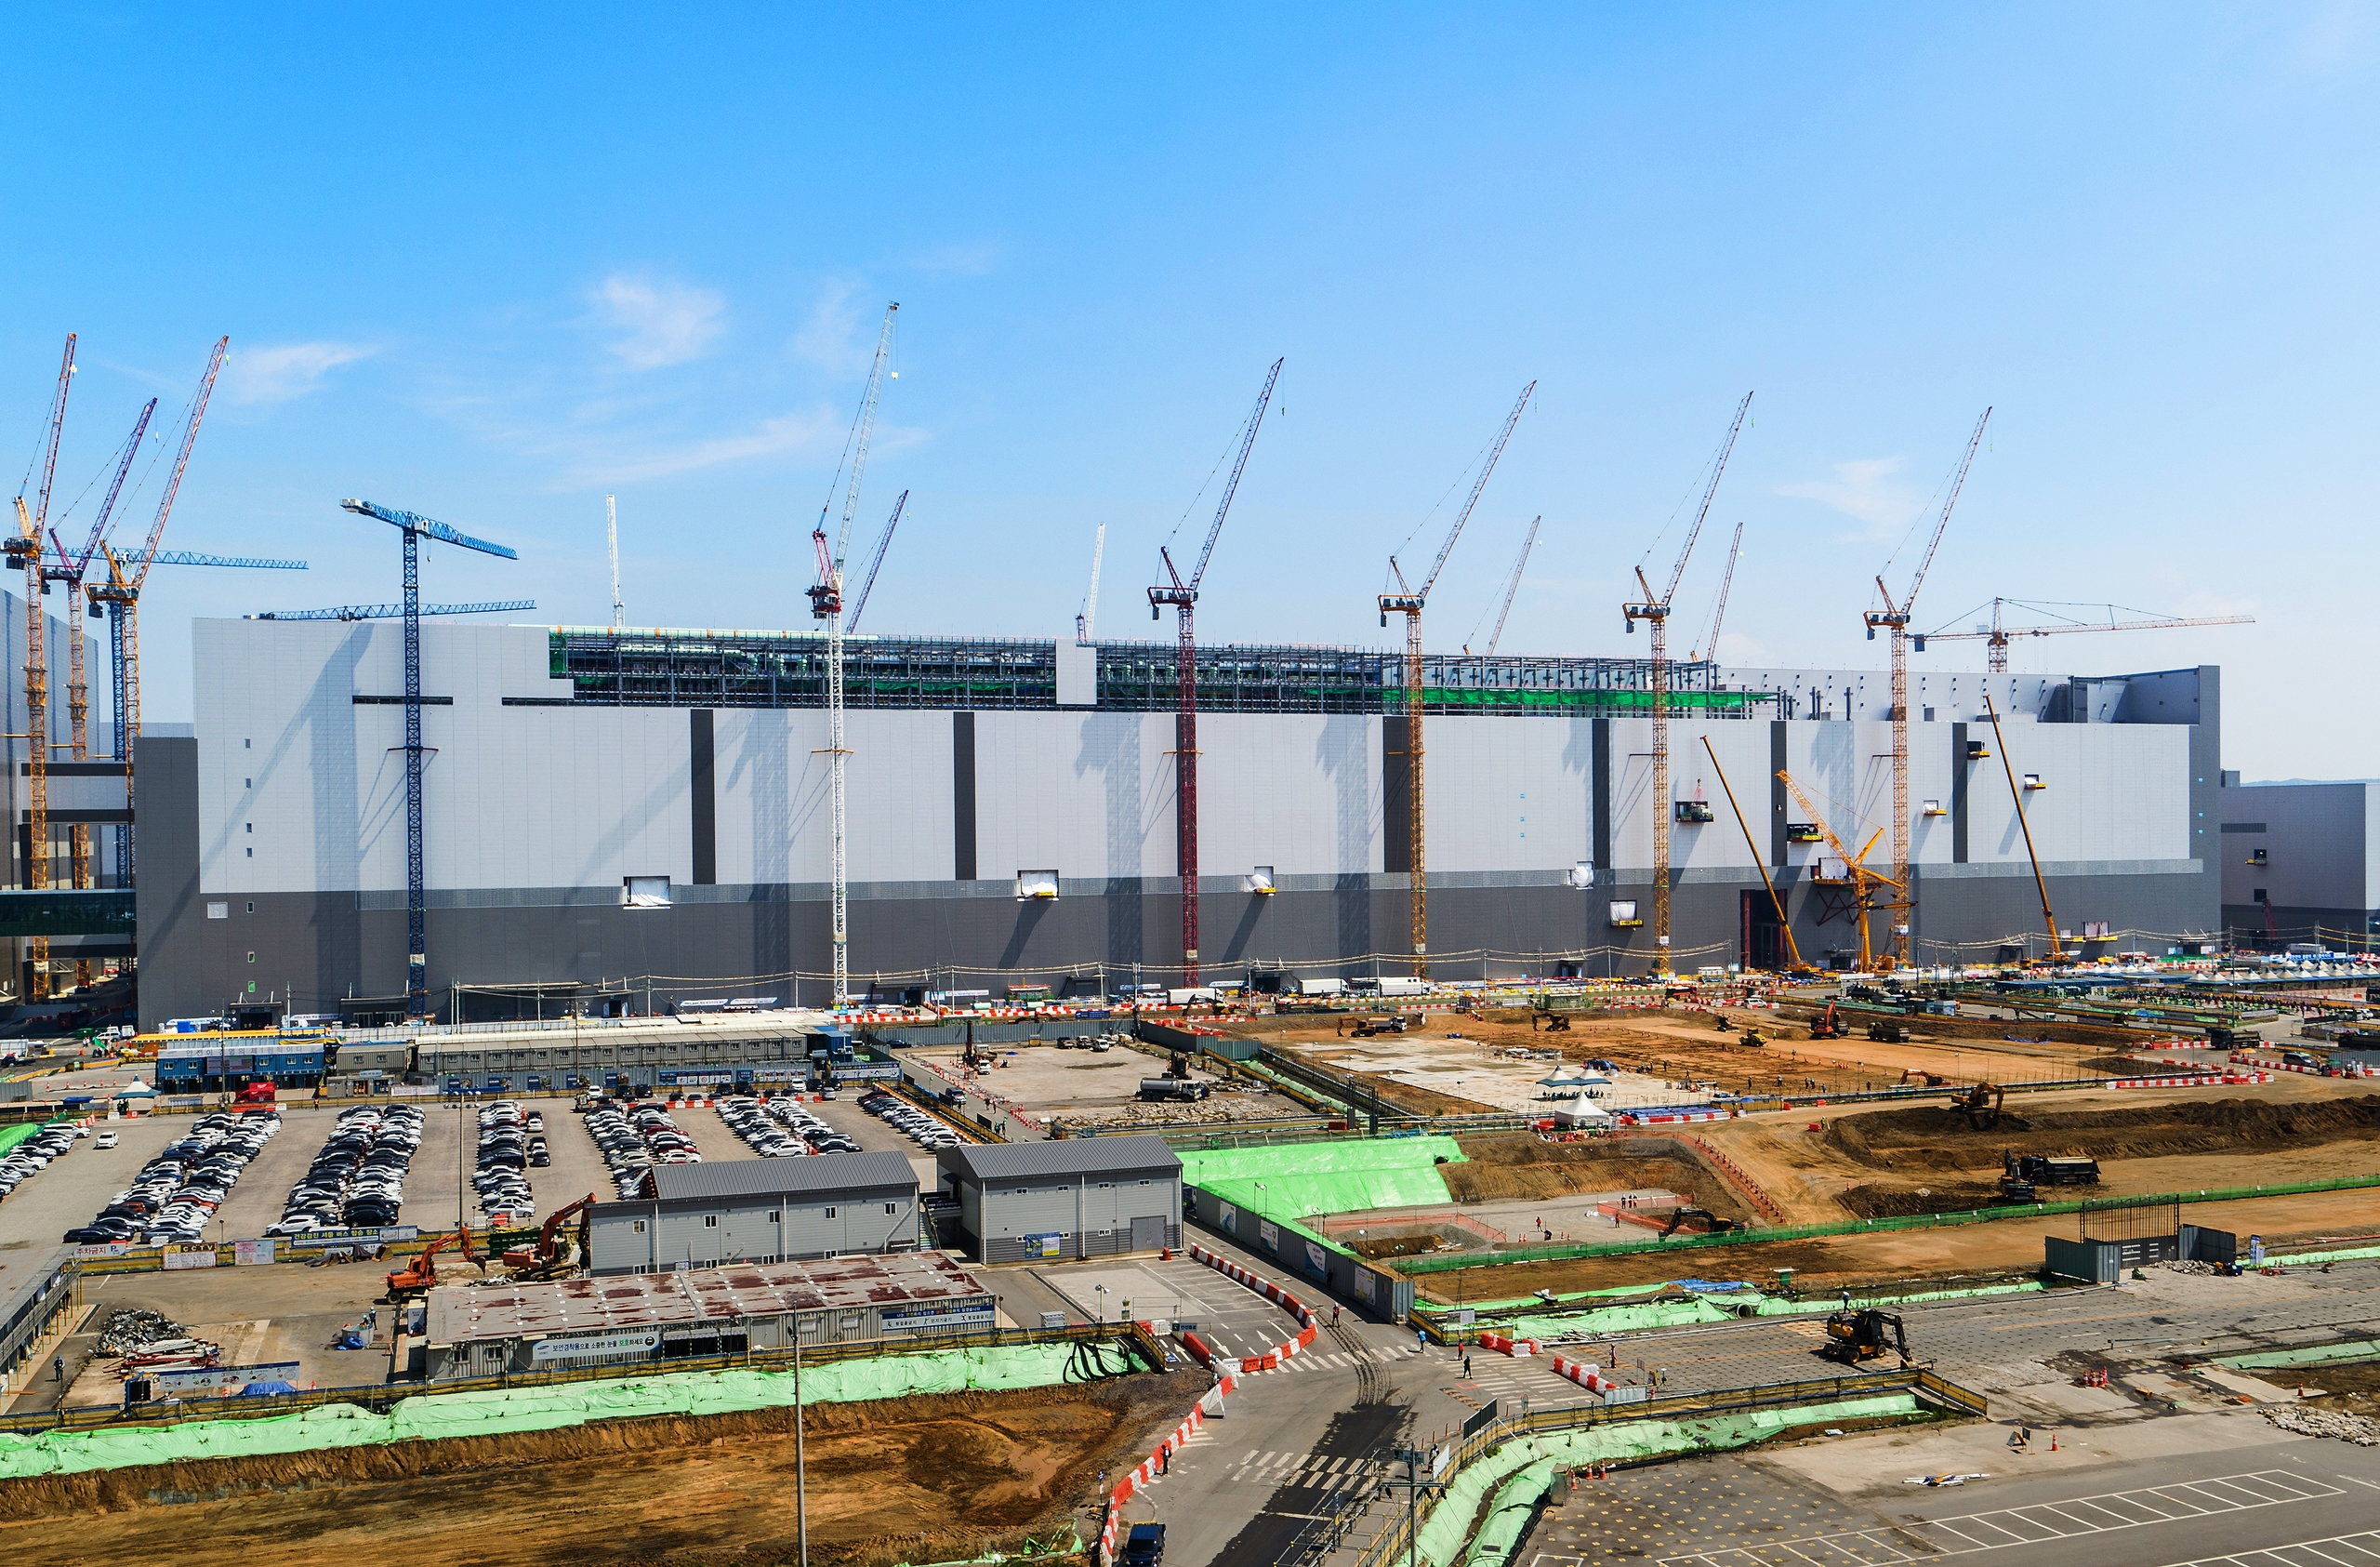 Located inside Pyeongtaek's Line 2 in Korea, the new facility is slated for mass production in 2H 2021 The facility will be dedicated to manufacturing Samsung's most advanced V-NAND memory